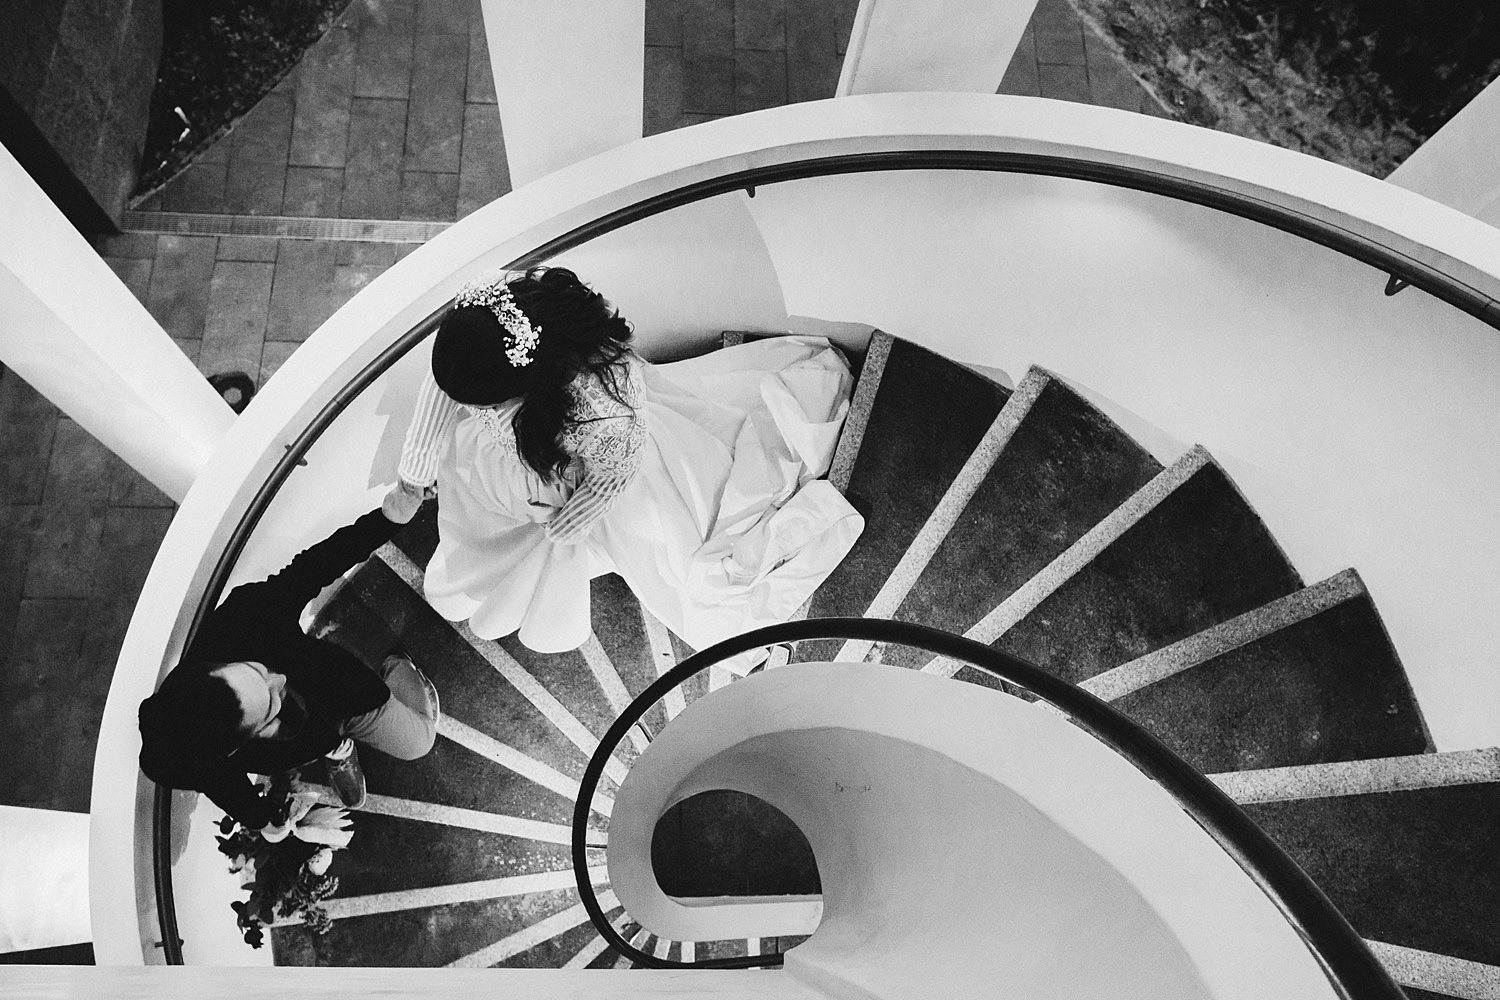 Bride & Groom Curing Down Stairs In City